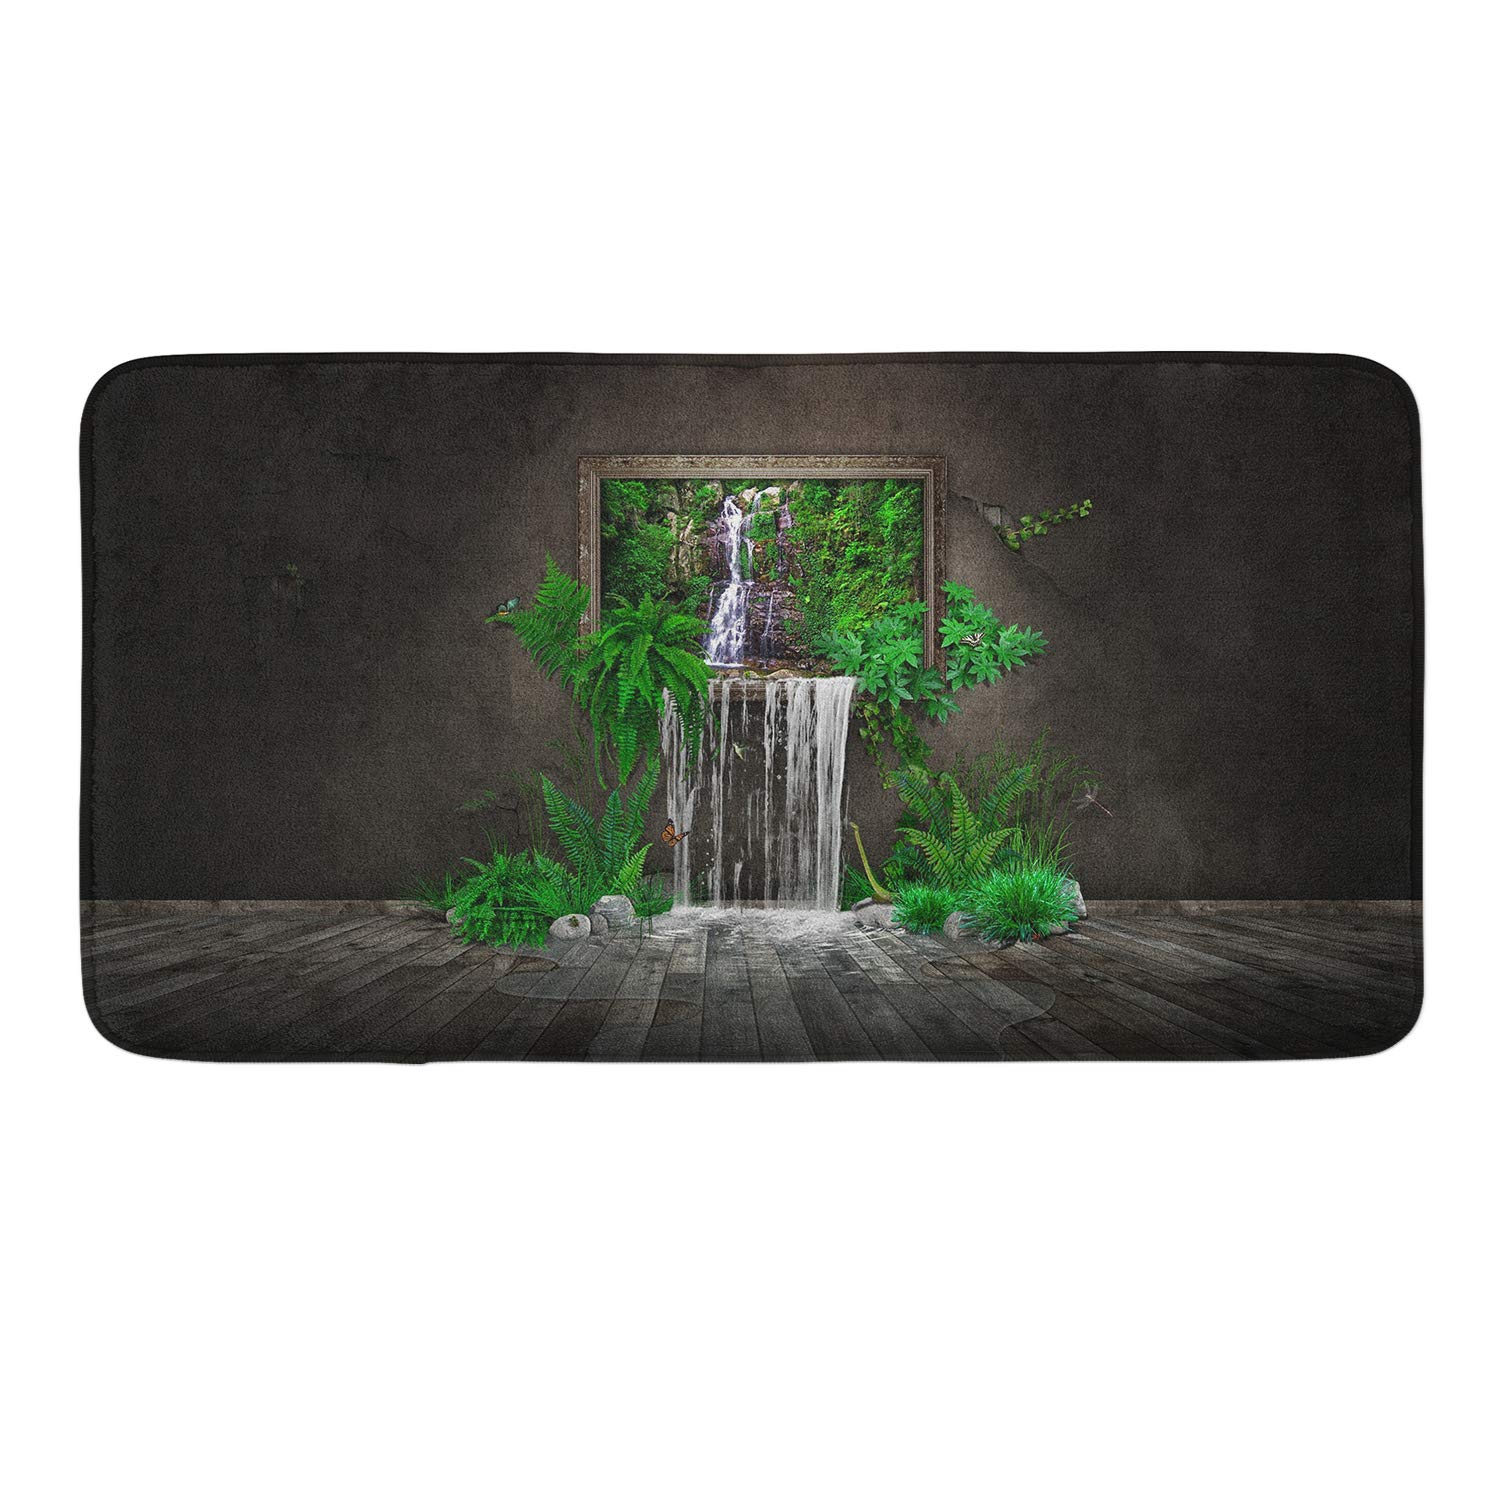 CIGOCI Anti-Slip Memory Foam Bath Mat - 18 x 36 Inch, Extra Absorbent,Soft,Duarable and Quick-Dry Shaggy Mat, 3D PrintWaterfall